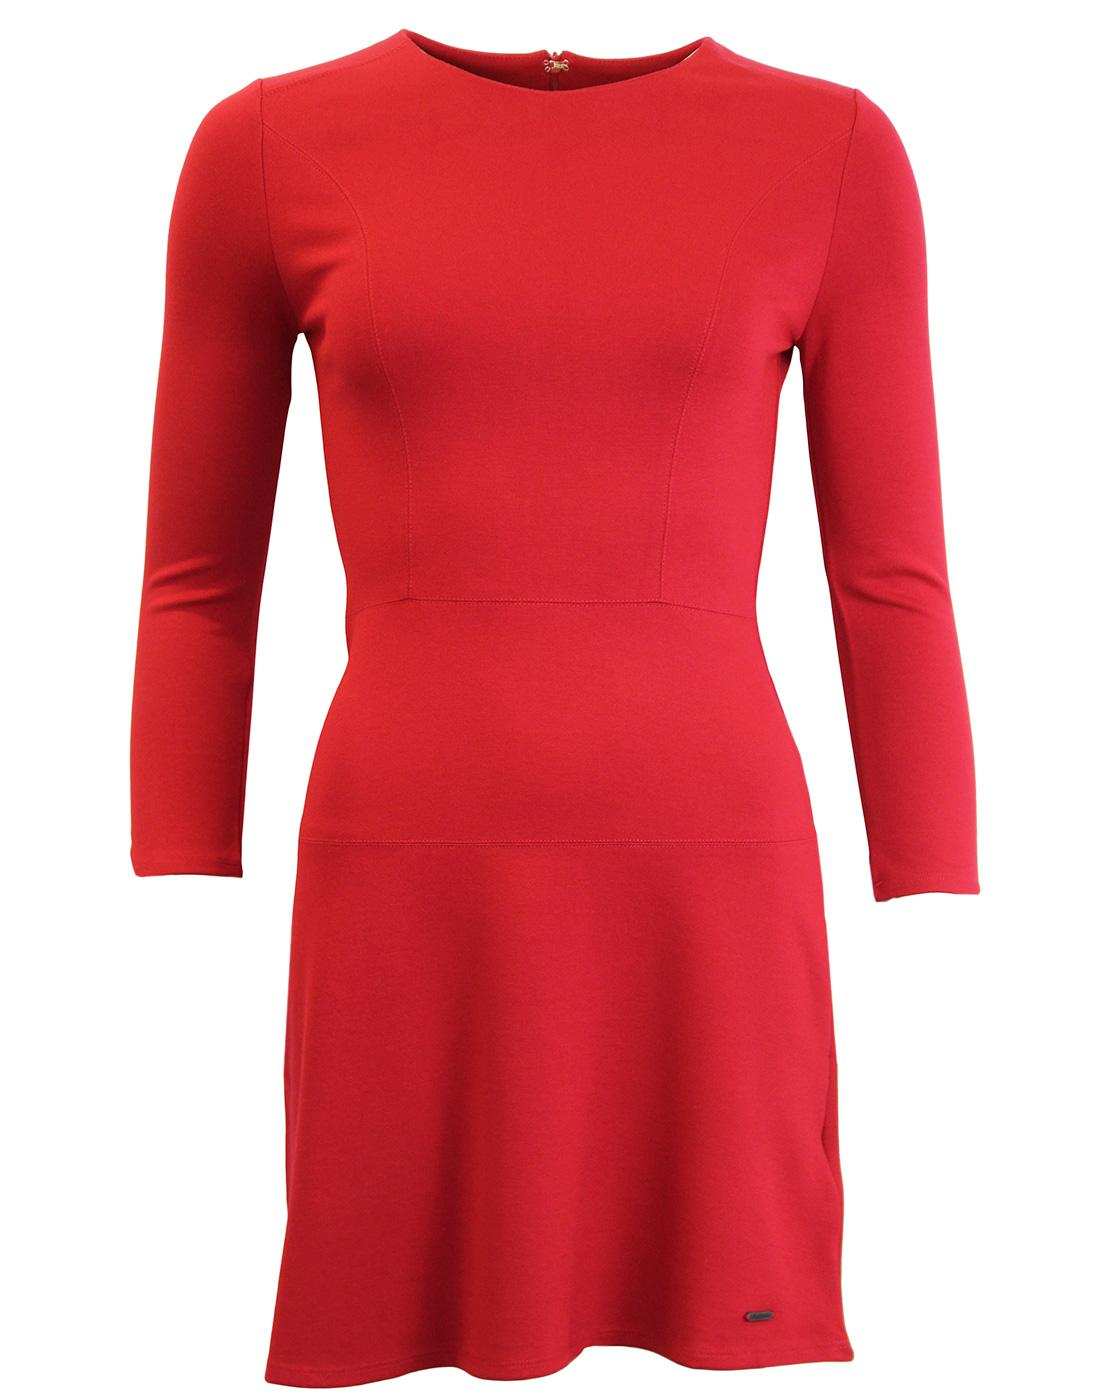 Freda PEPE JEANS Retro Mod Panel Skater Dress RED